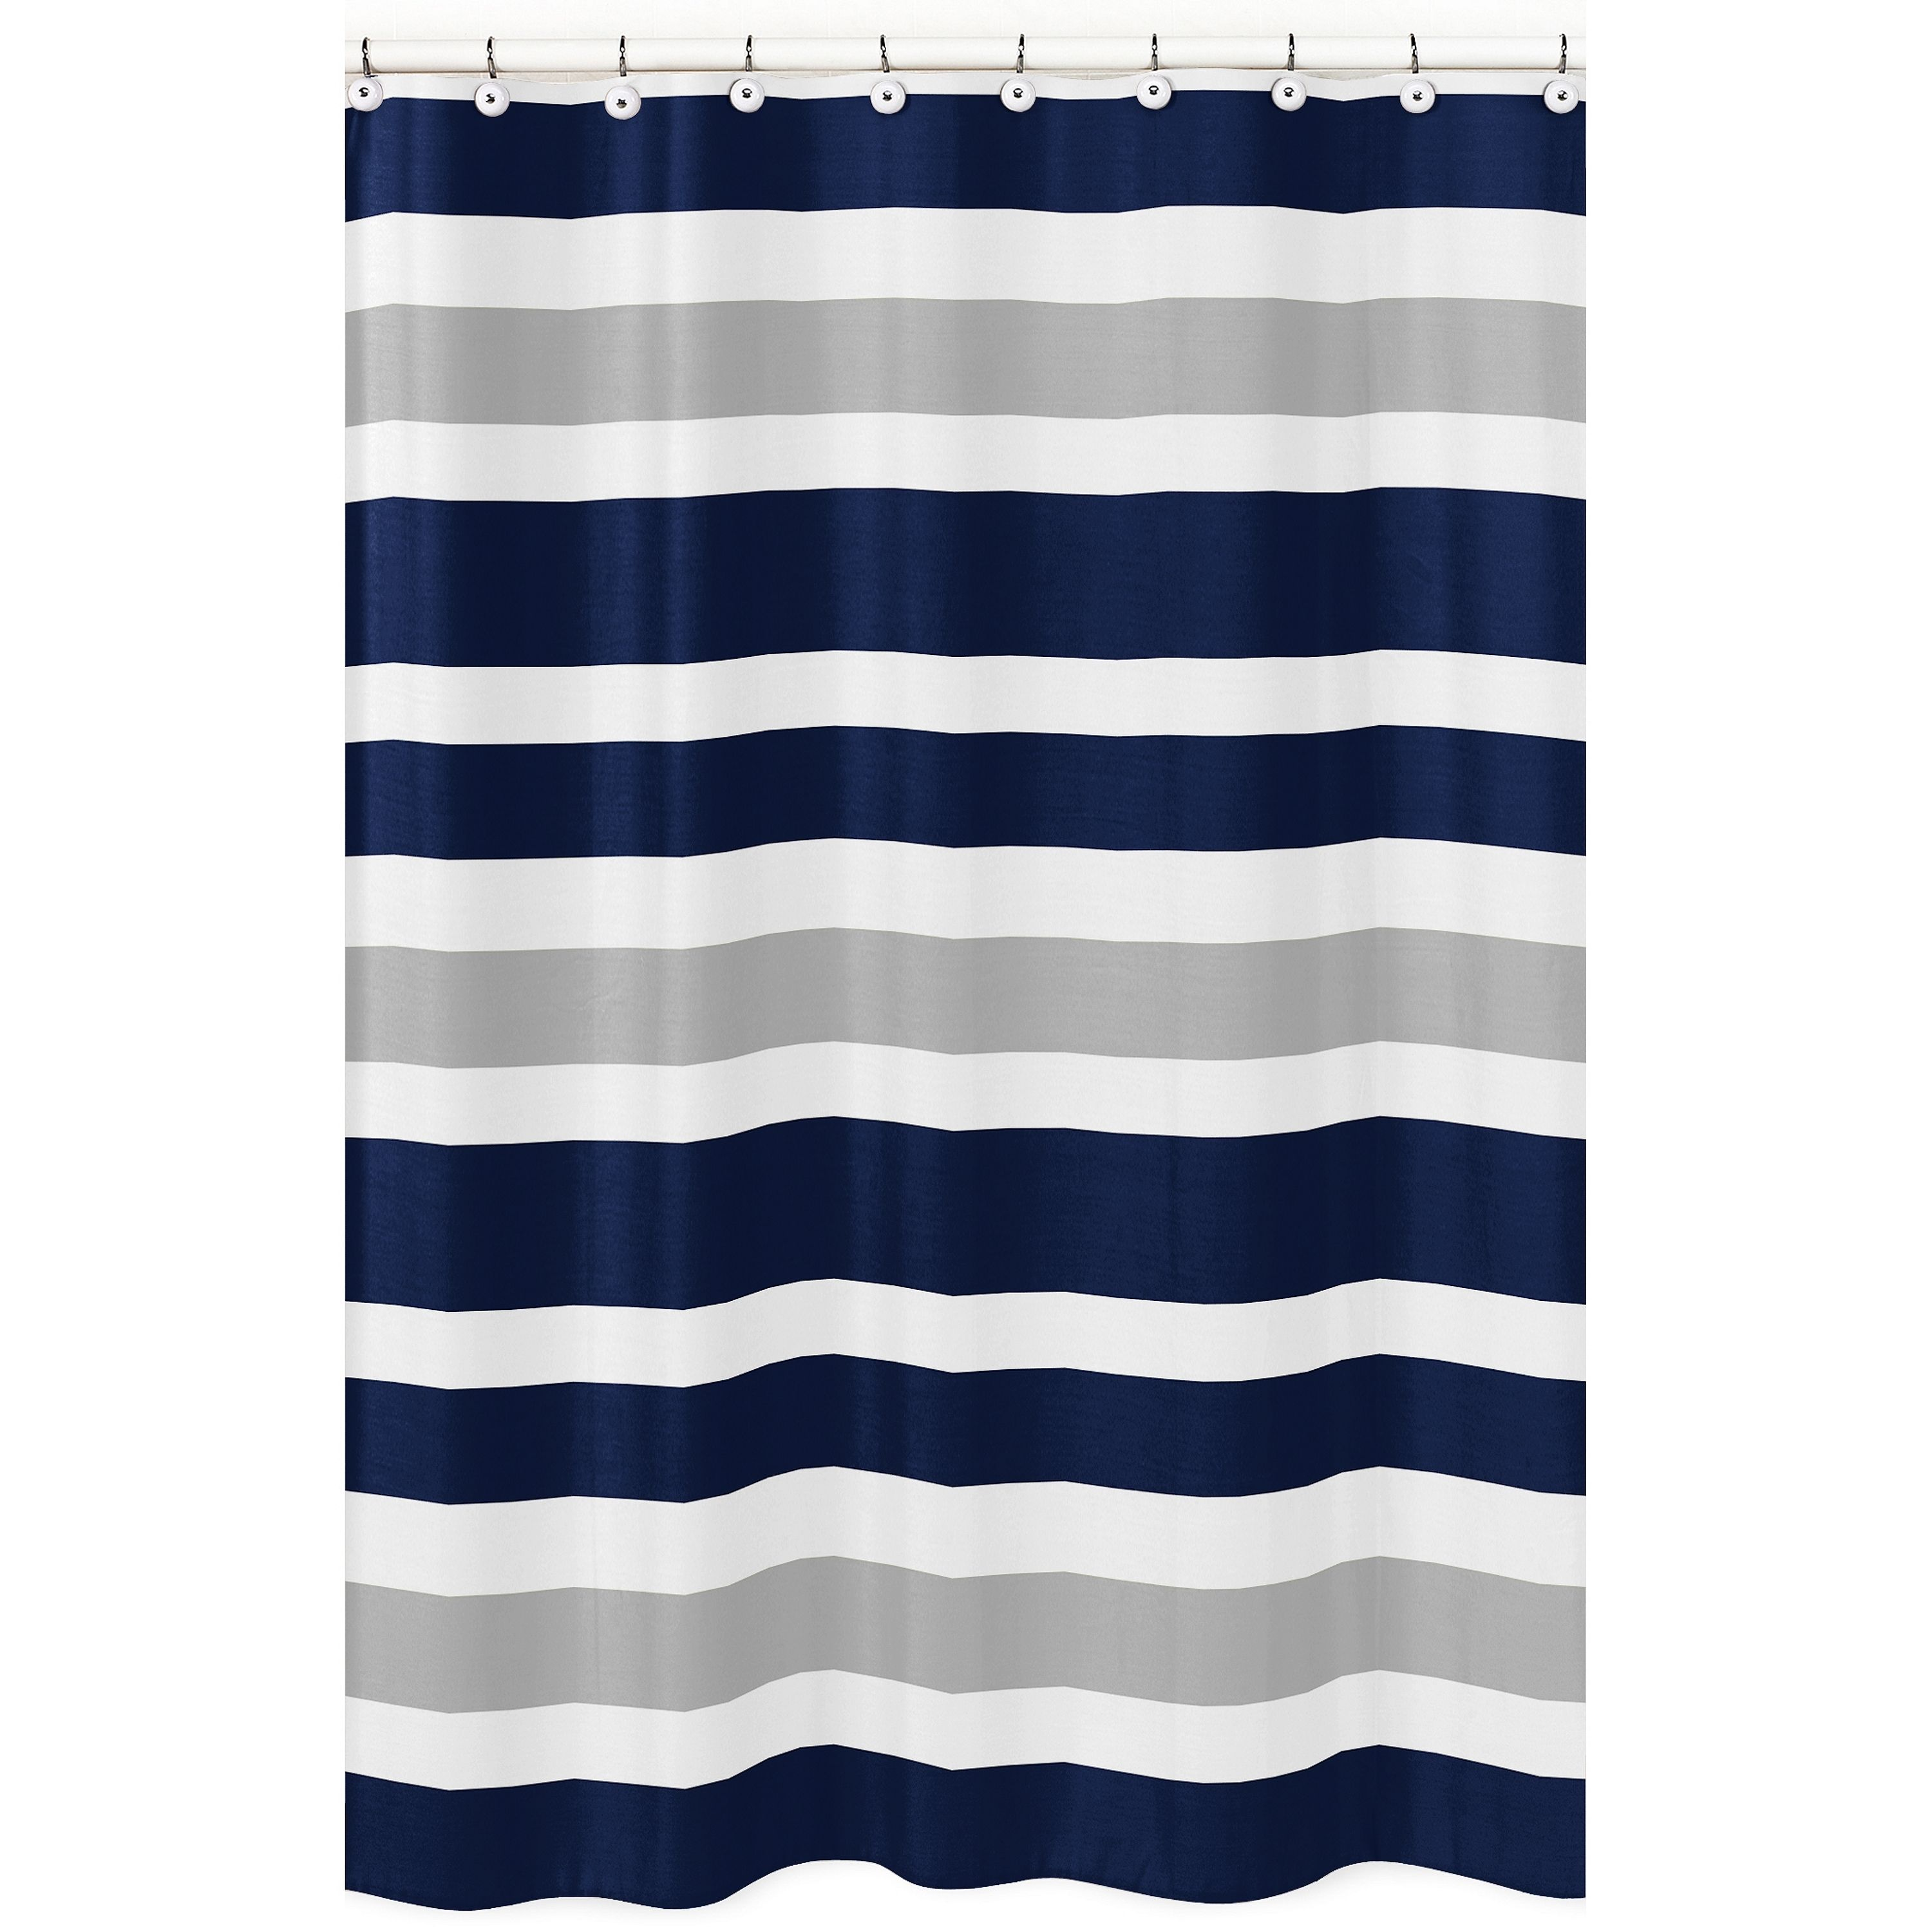 Navy Blue And Gray Stripe Shower Curtain Gray Navy Blue And White Sweet Jojo Designs Gray Shower Curtains Striped Shower Curtains Blue Shower Curtains